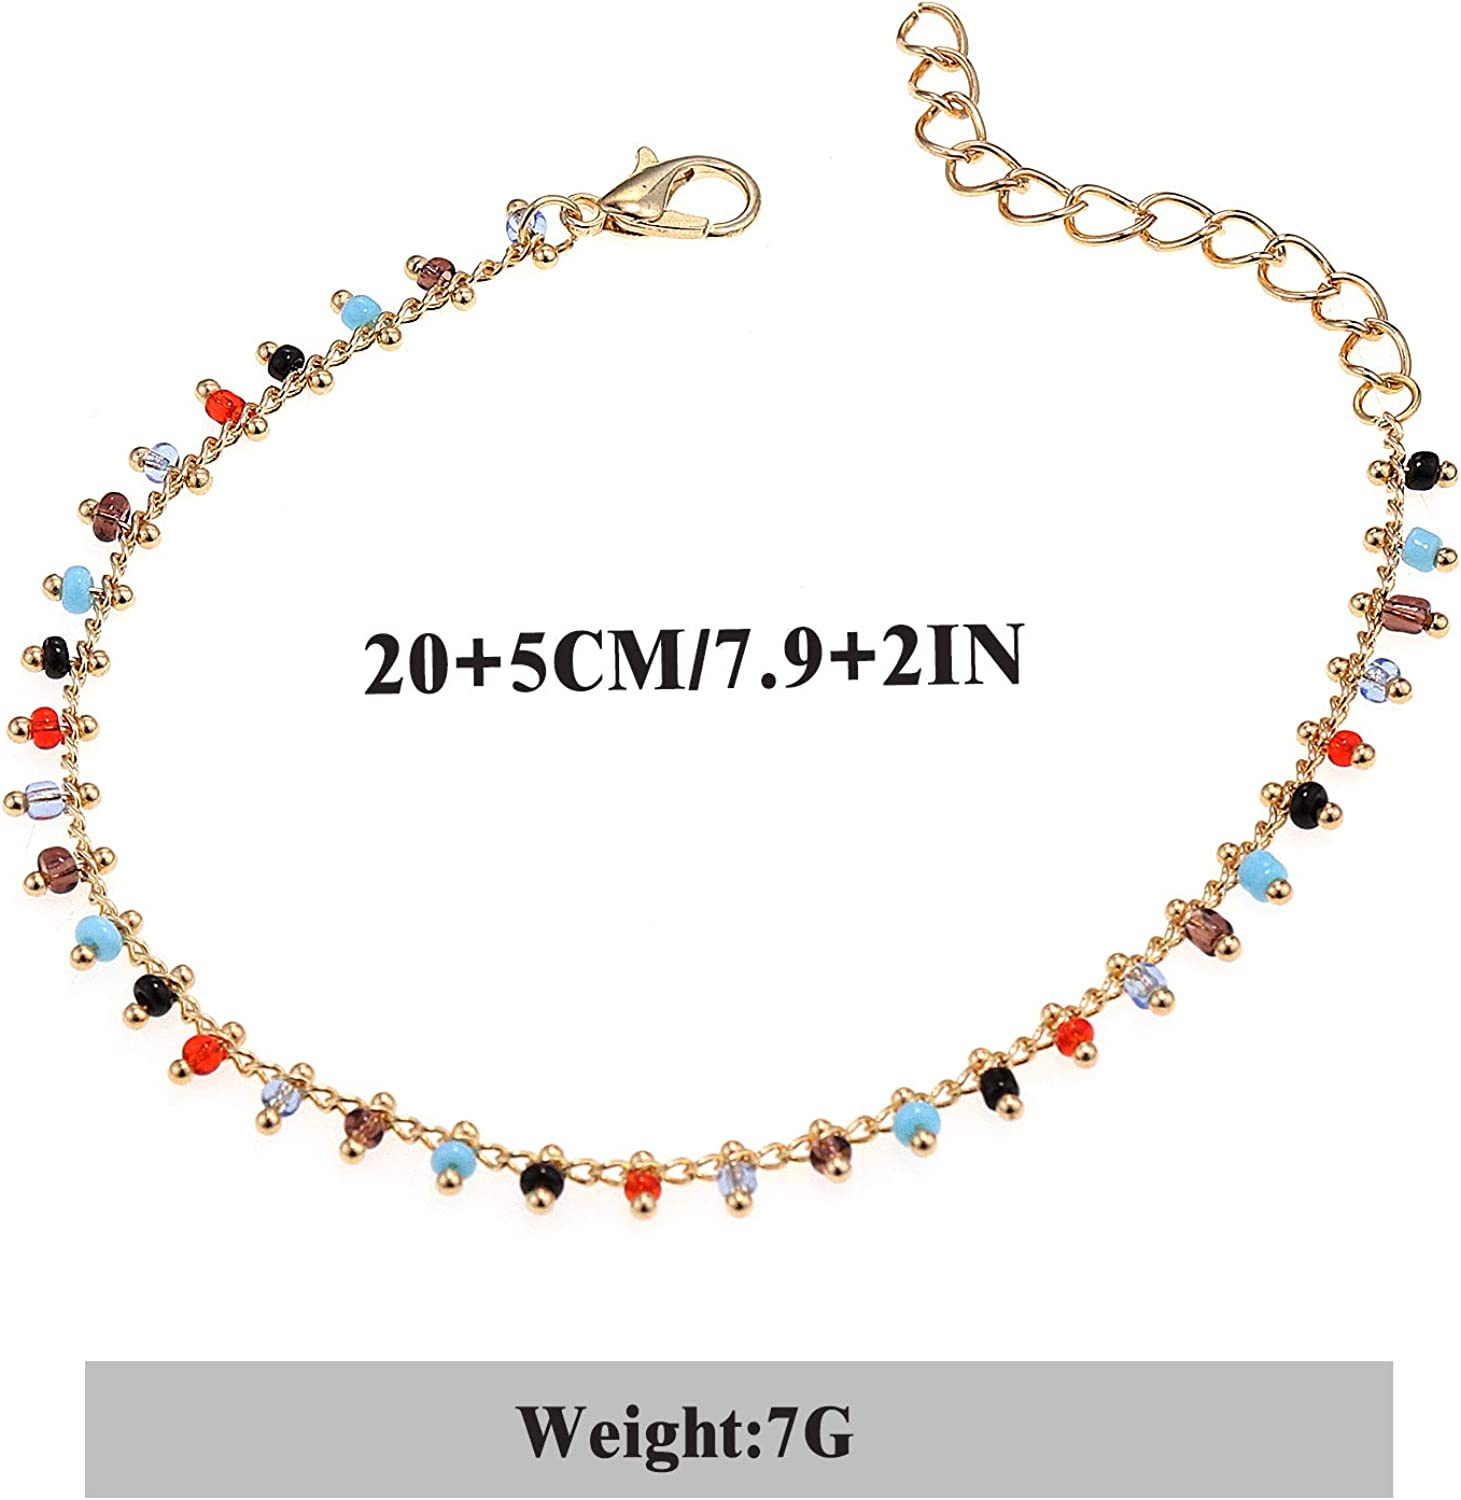 Suyi Ankle Bracelet for Women Girls Adjustable Boho Beach Anklets Color Bead Foot Chain Gift